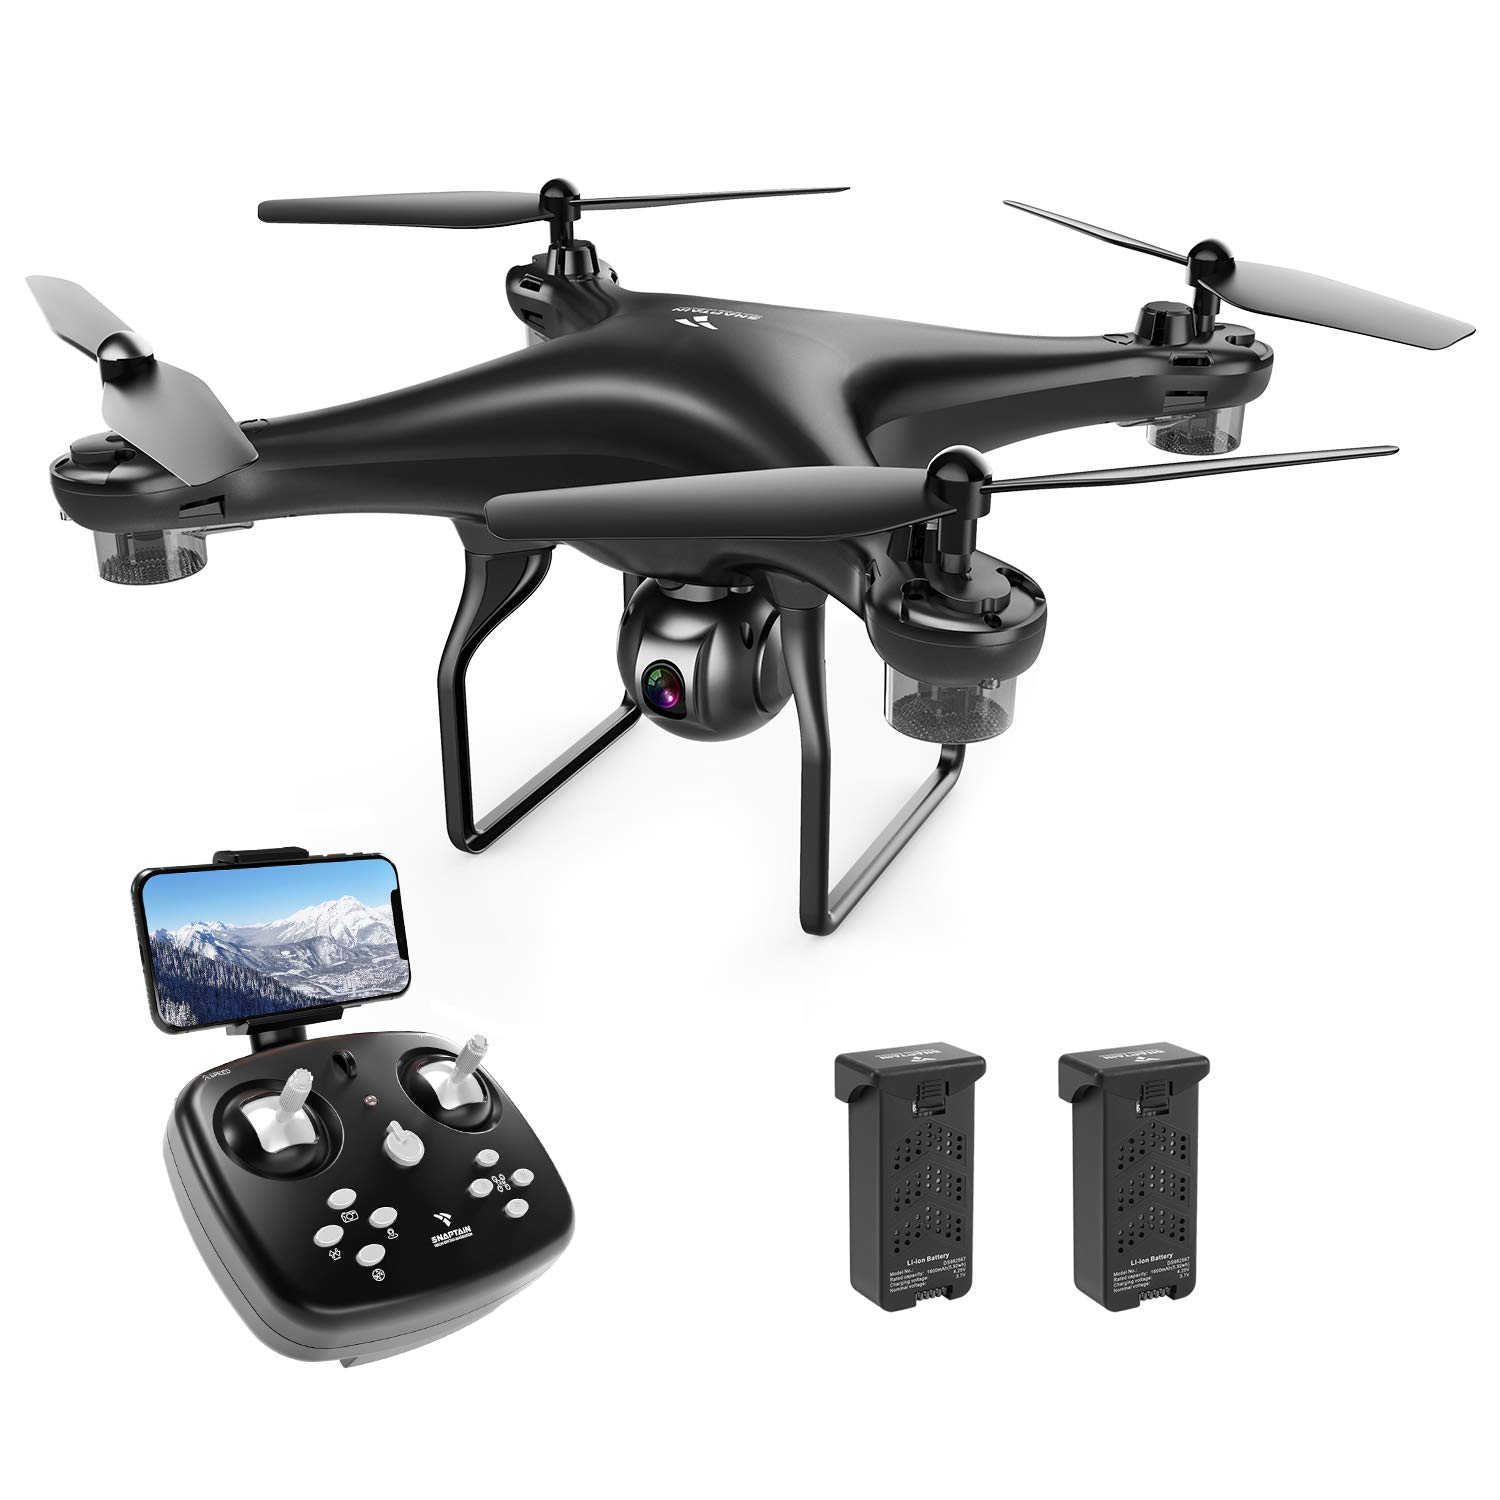 SNAPTAIN Beginners Quadcopter Altitude Headless